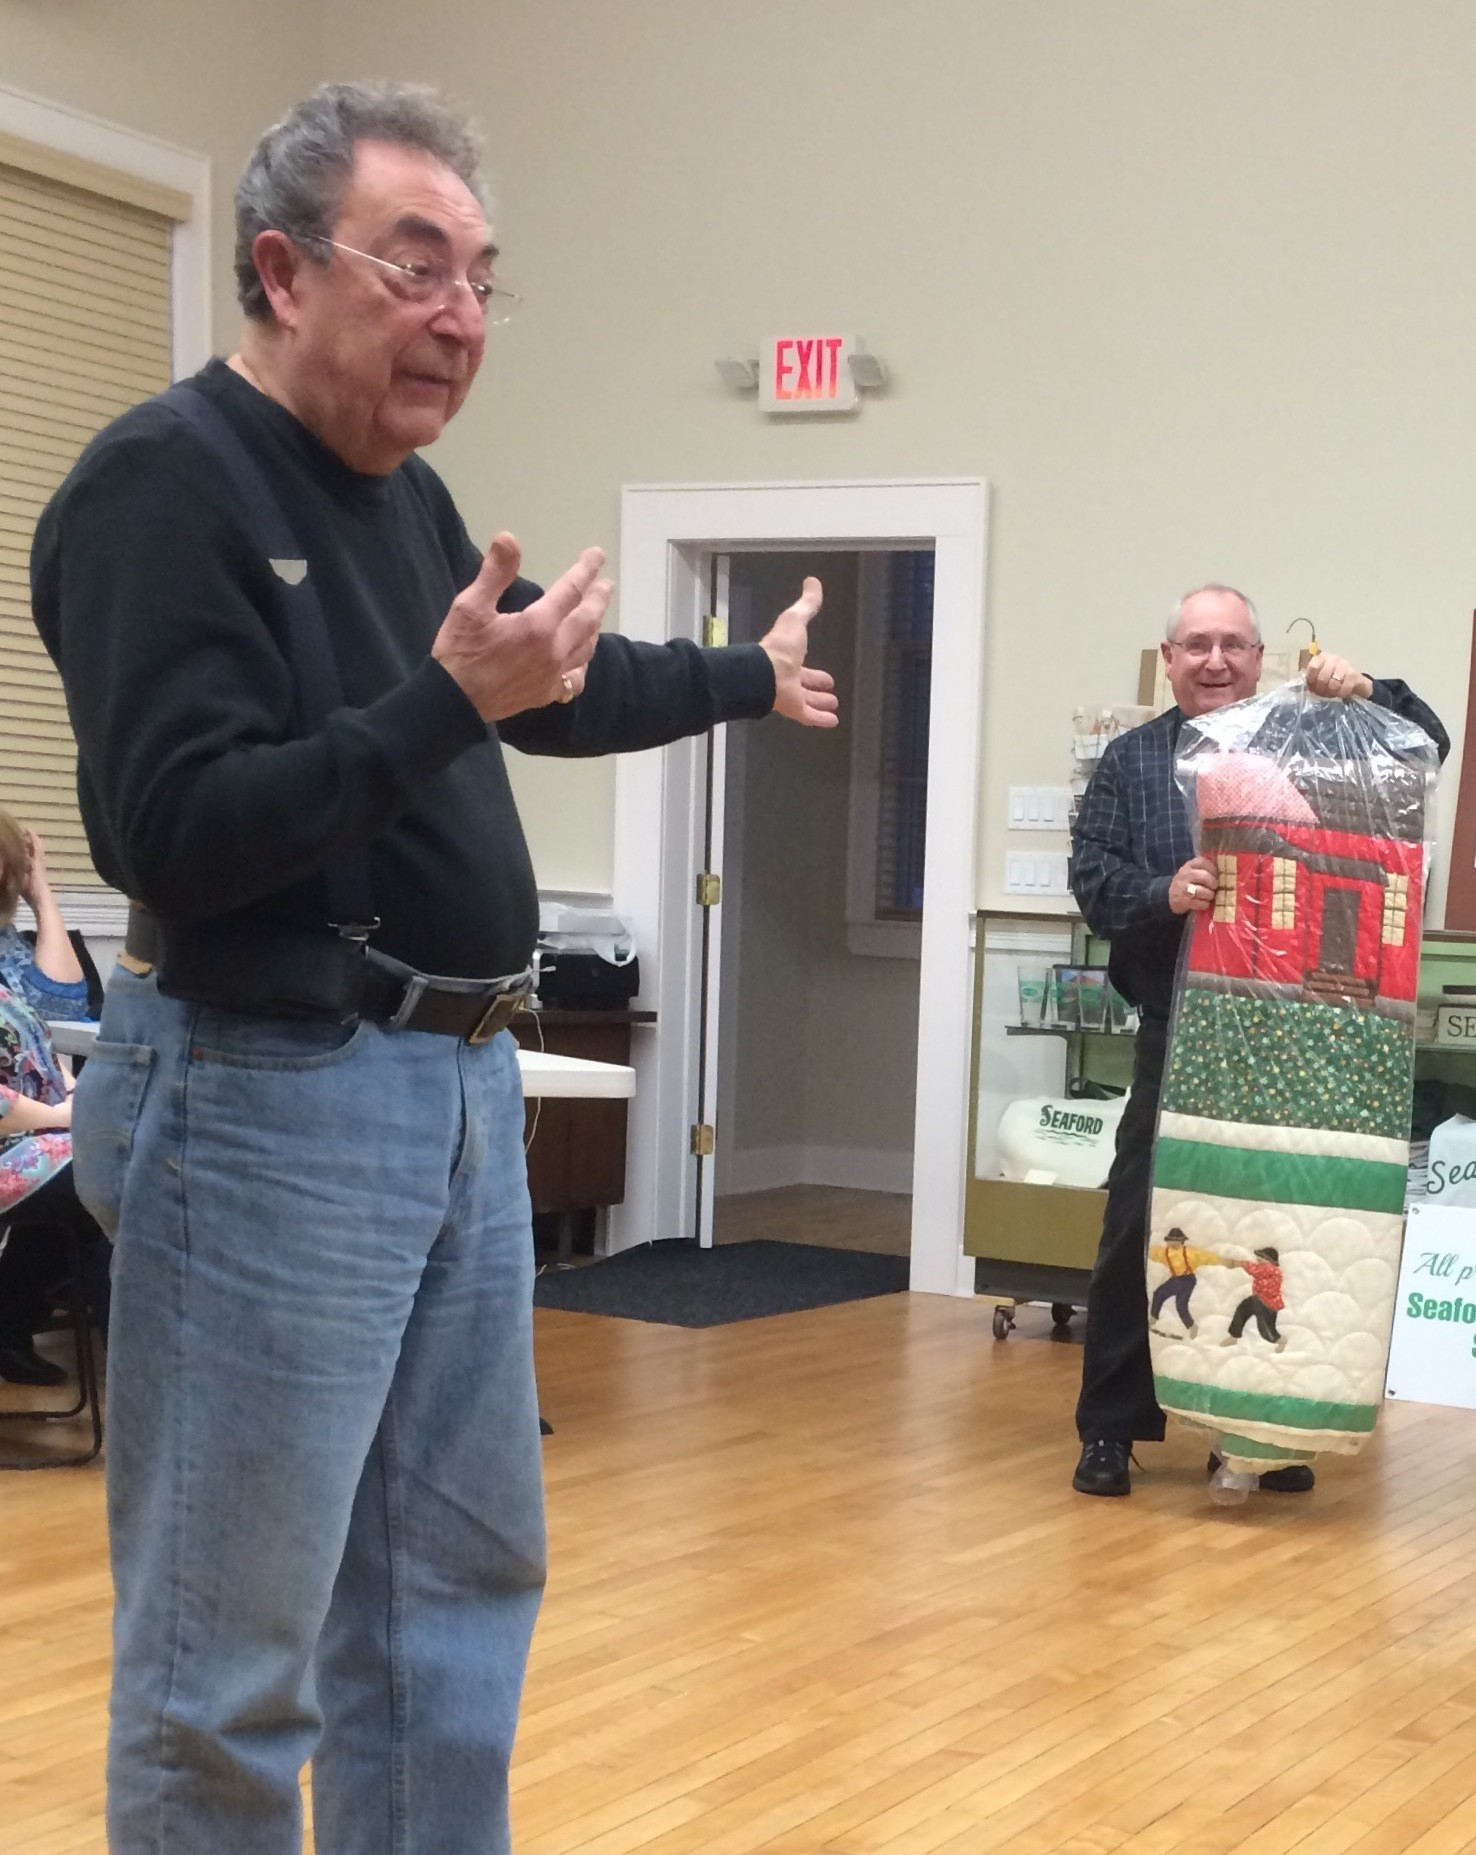 Steve Bongiovi, right, showed Eddie Costello a quilt from the 1960s that Costello valued at $12,000.